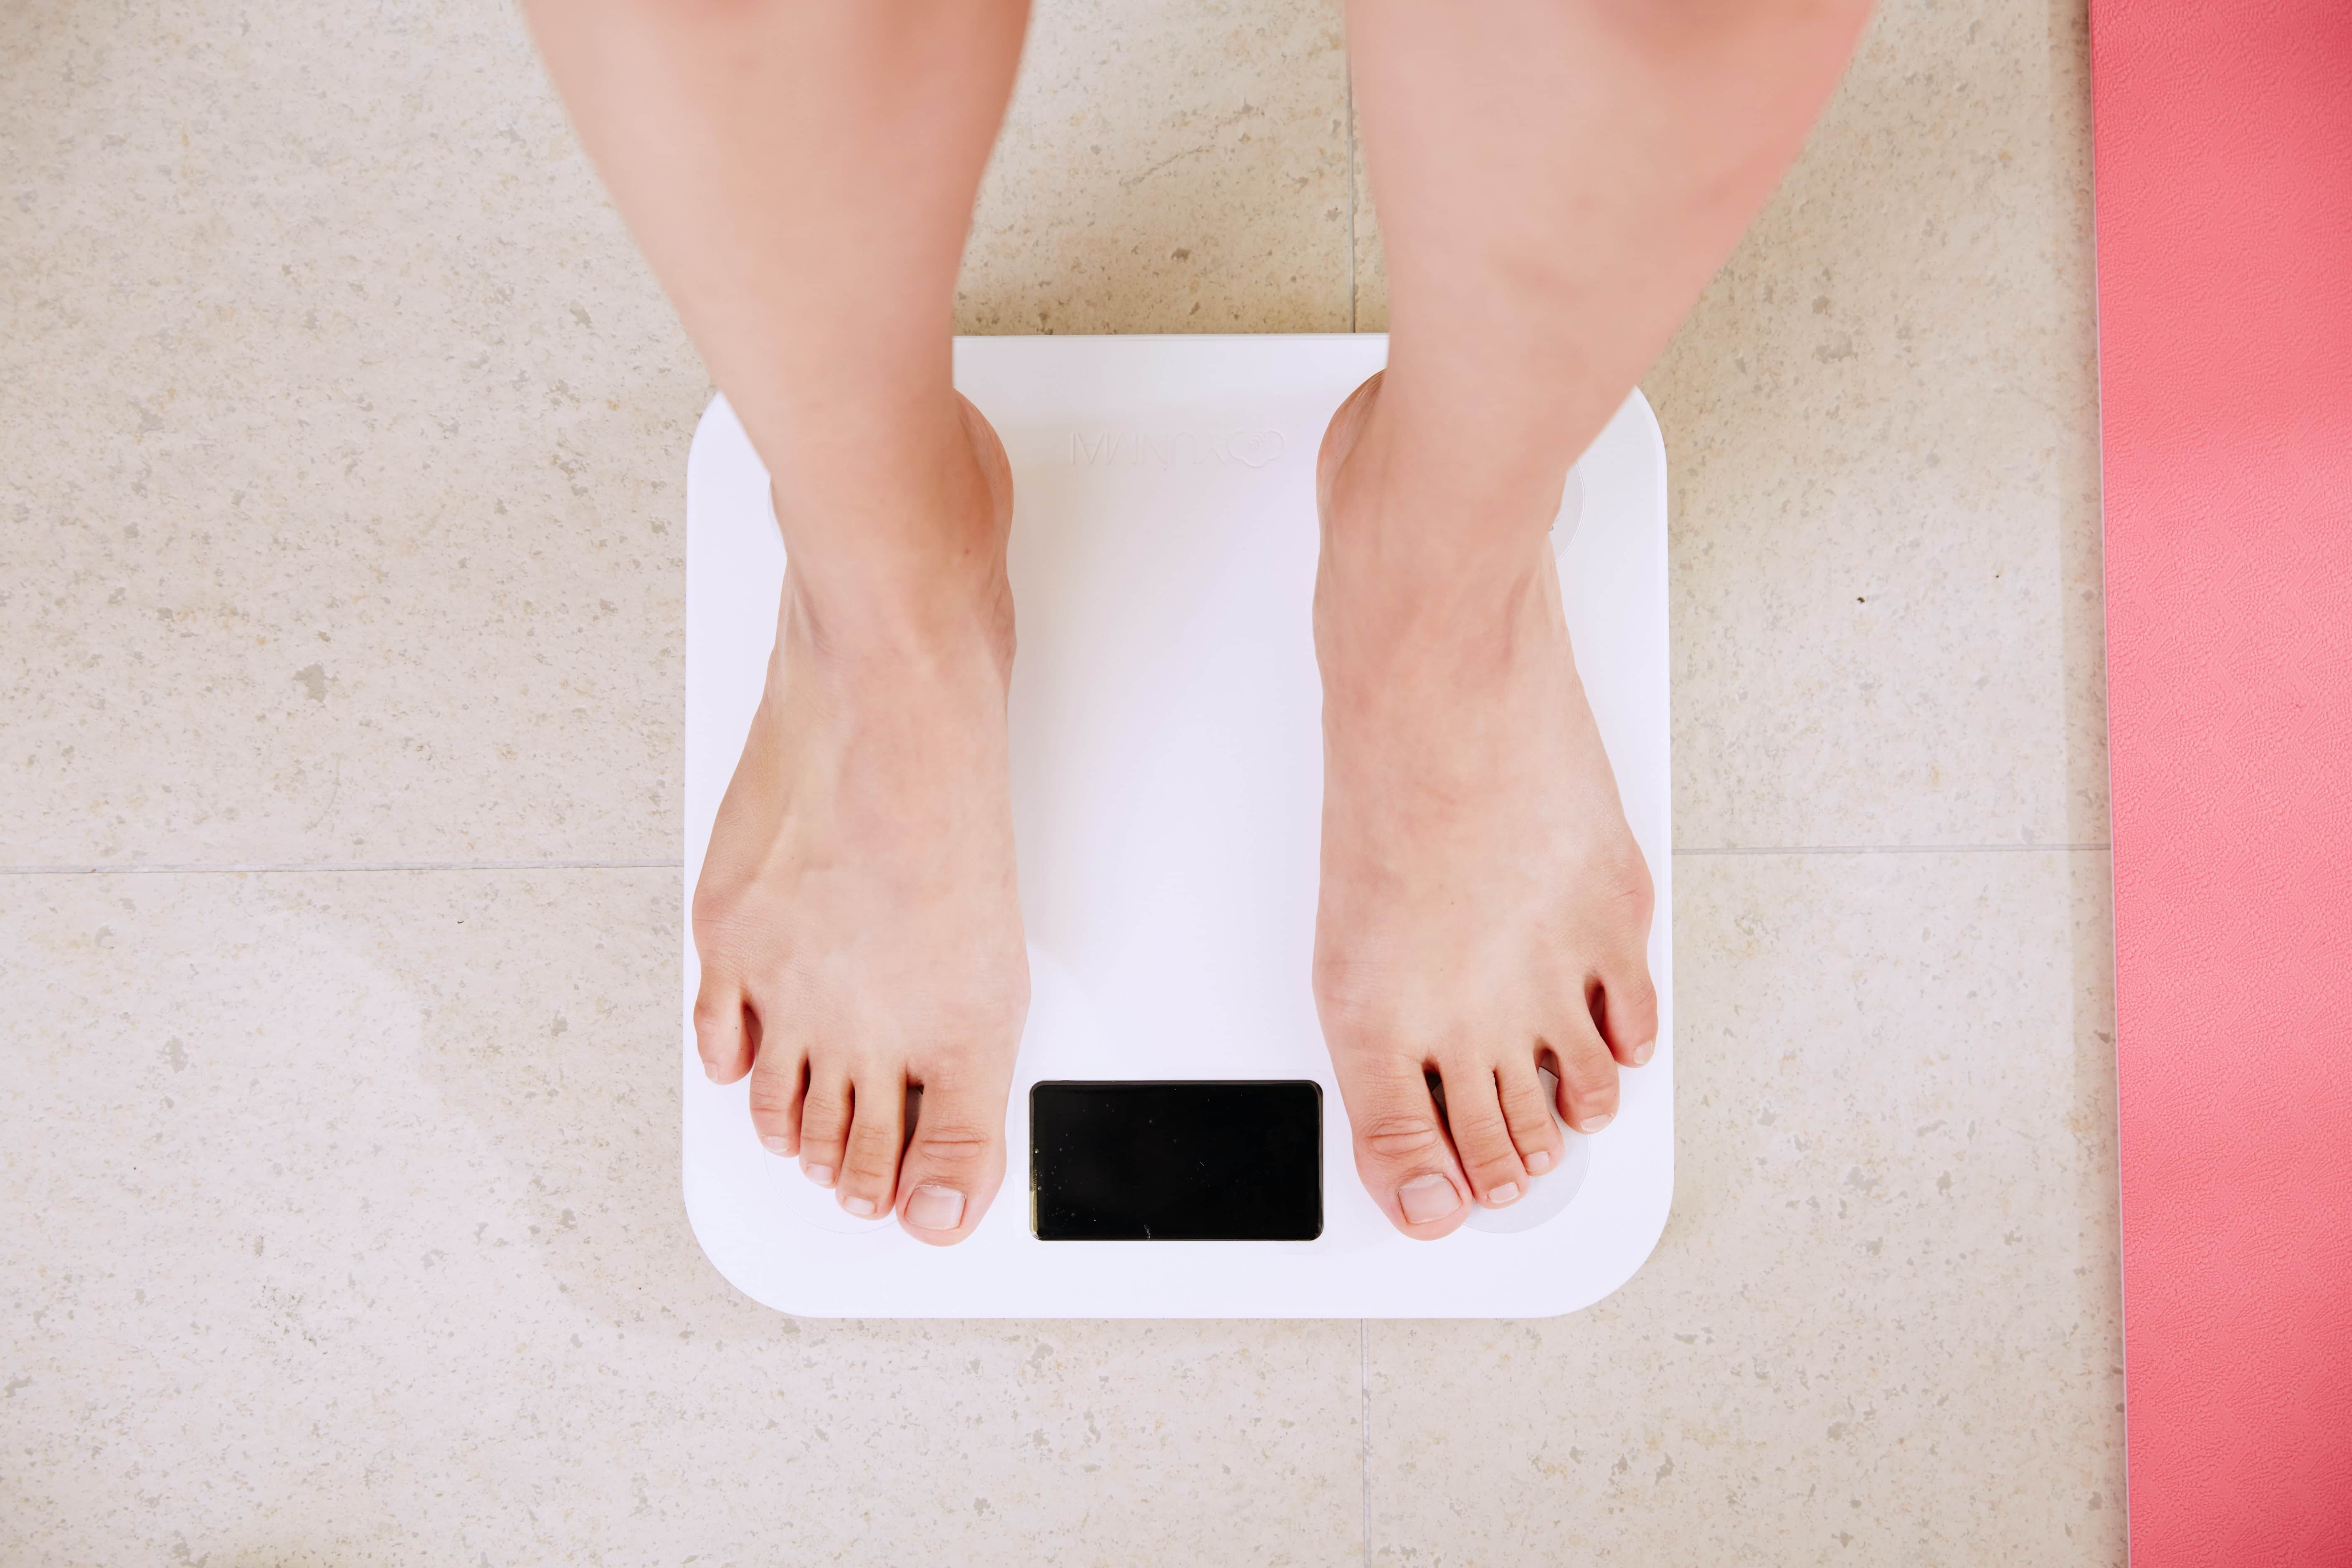 hypnosis for weight loss vanier